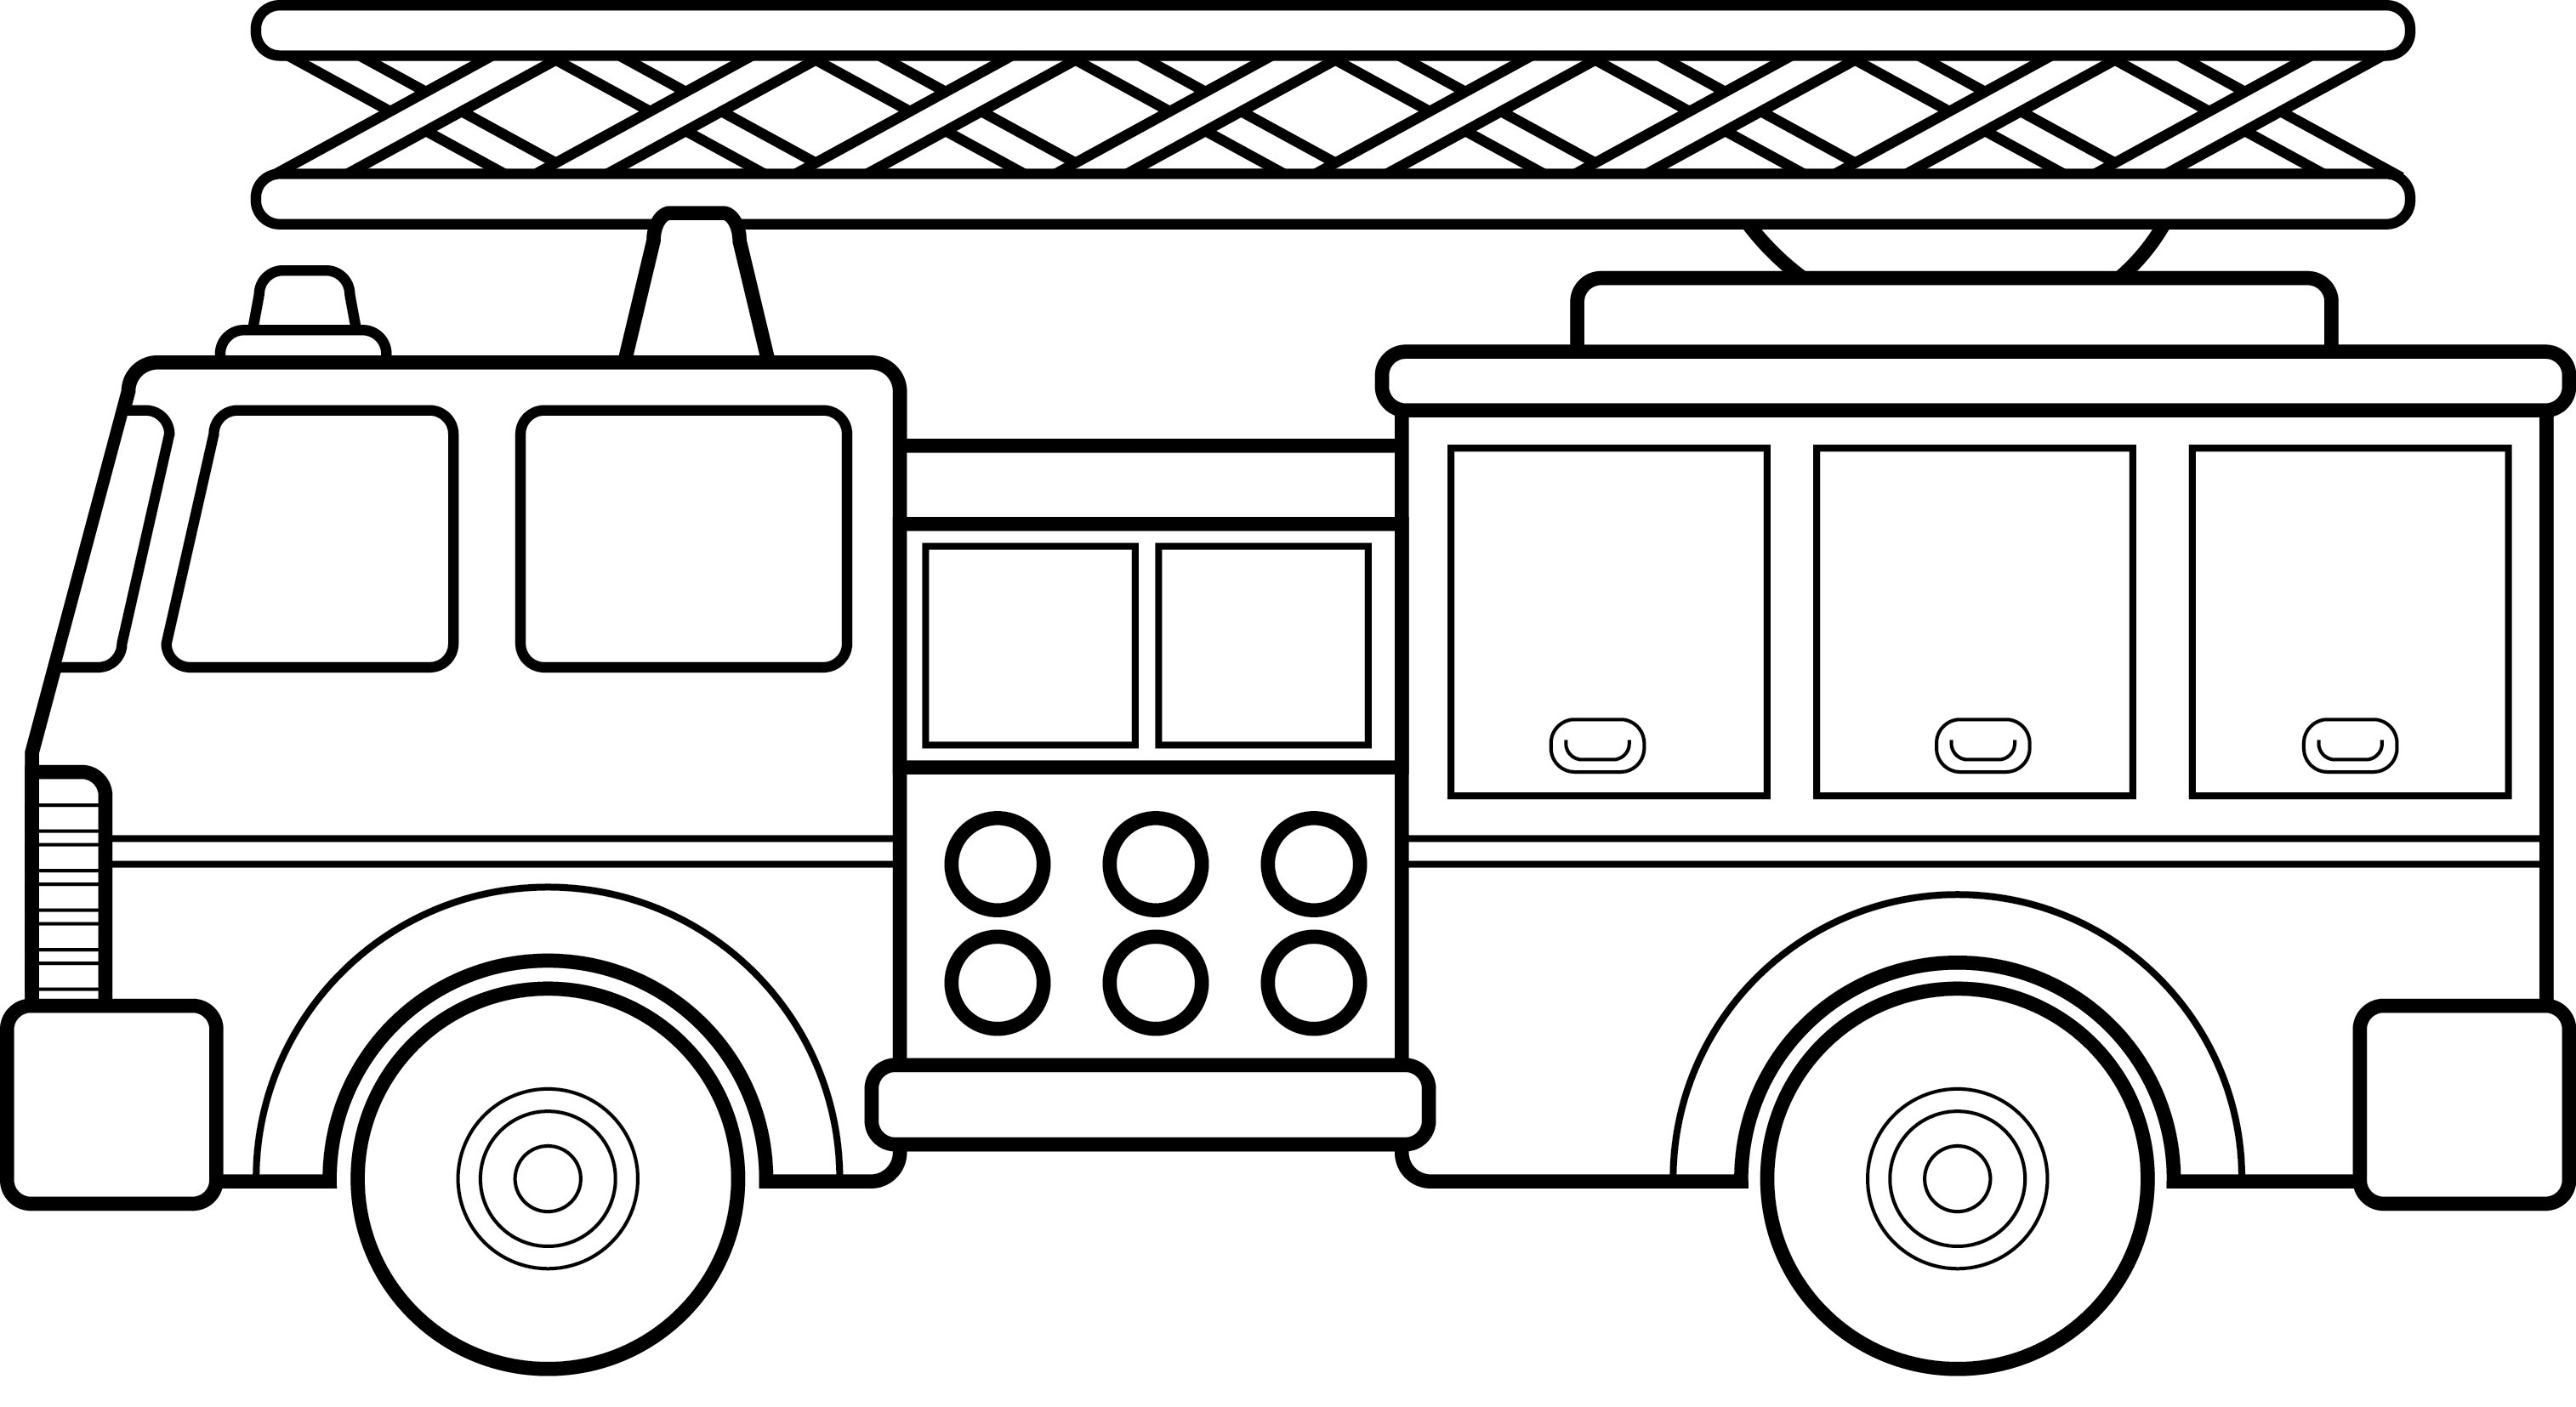 Fire truck cars and trucks clip art blac-Fire truck cars and trucks clip art black and white car 2 top-17